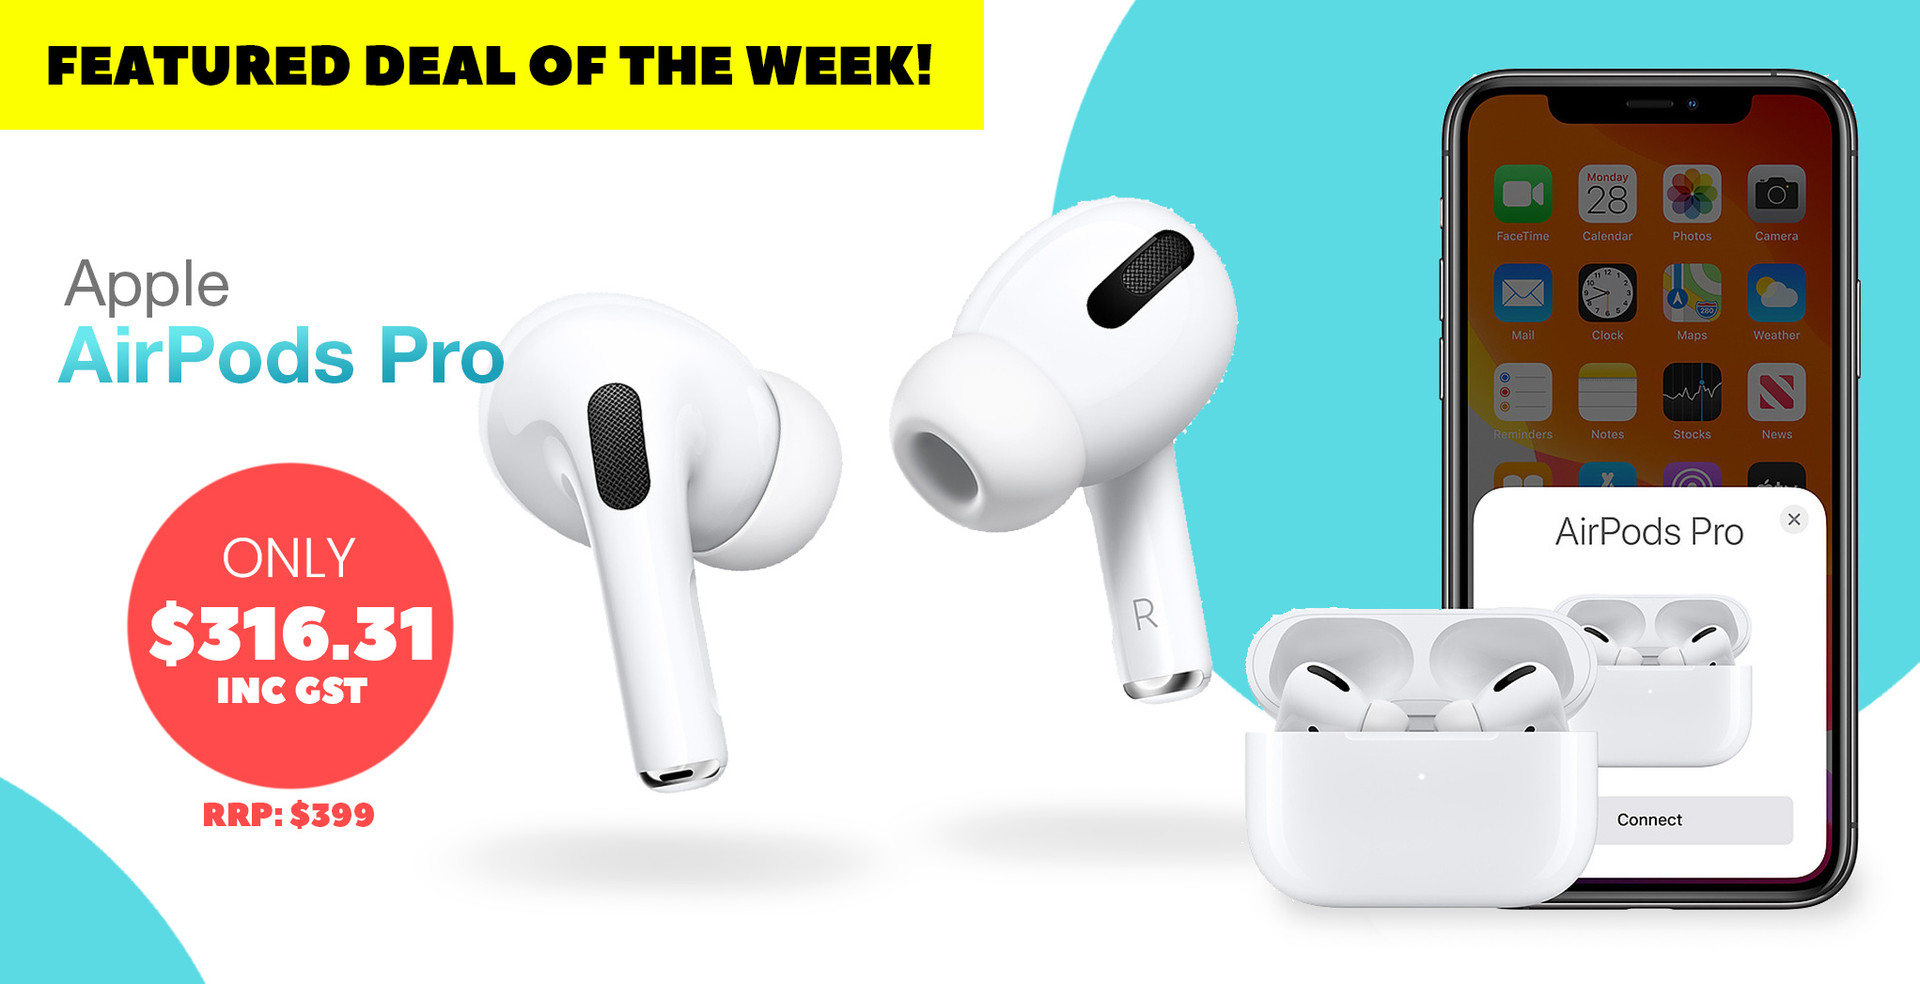 Featured Deal of the Week: AirPods Pro